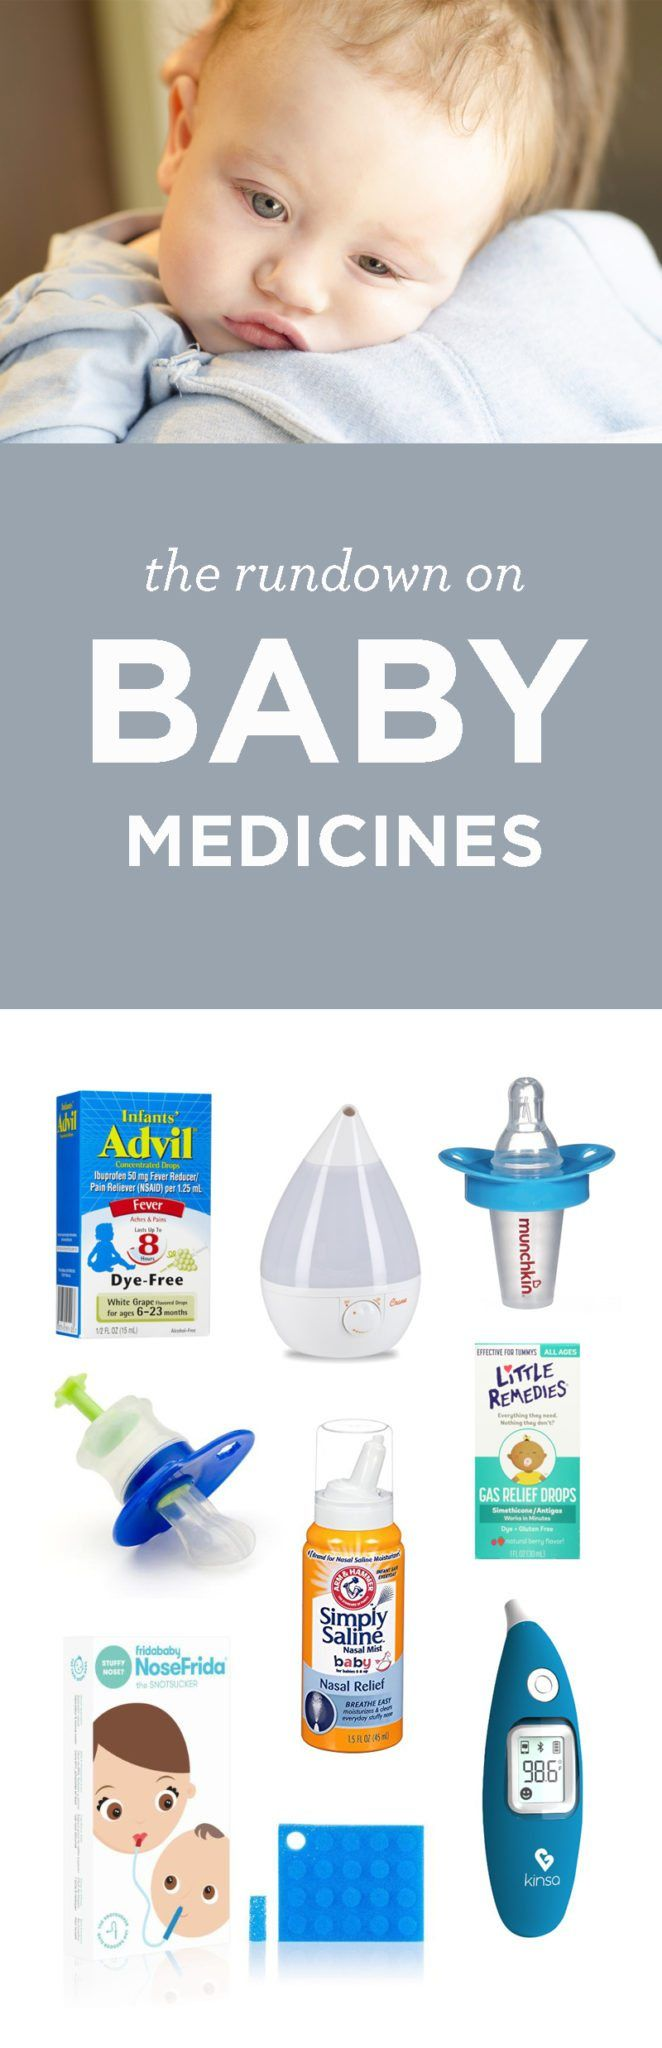 Having a sick baby is the worst. Check out this great list of all the baby meds out there and what symptoms they treat so you can be prepared!